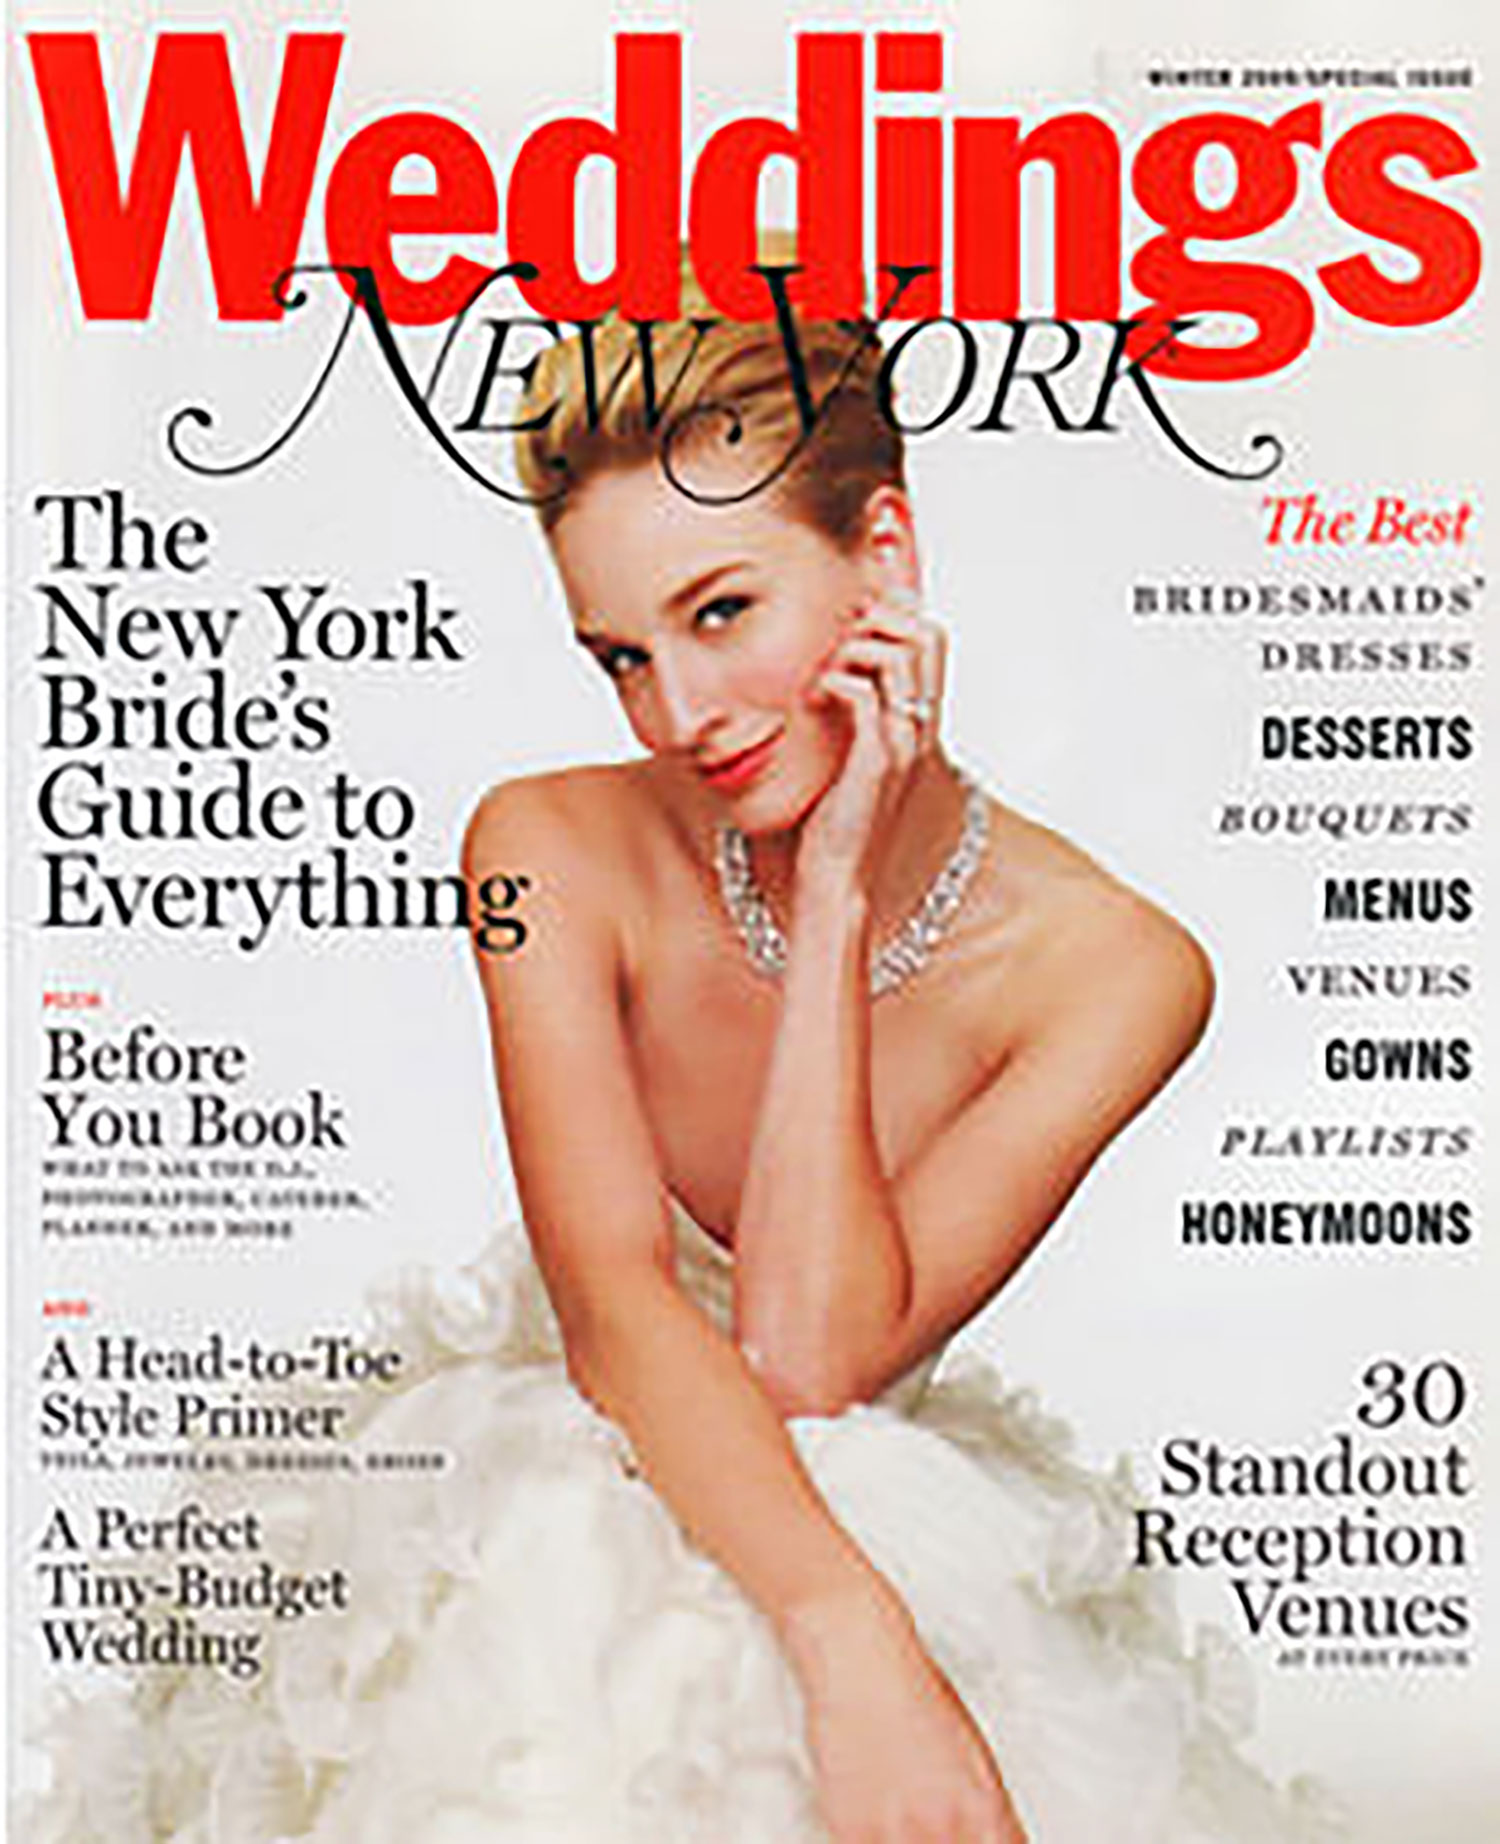 New York Magazine: The Top Ten Reasons to Get Married in New York. -